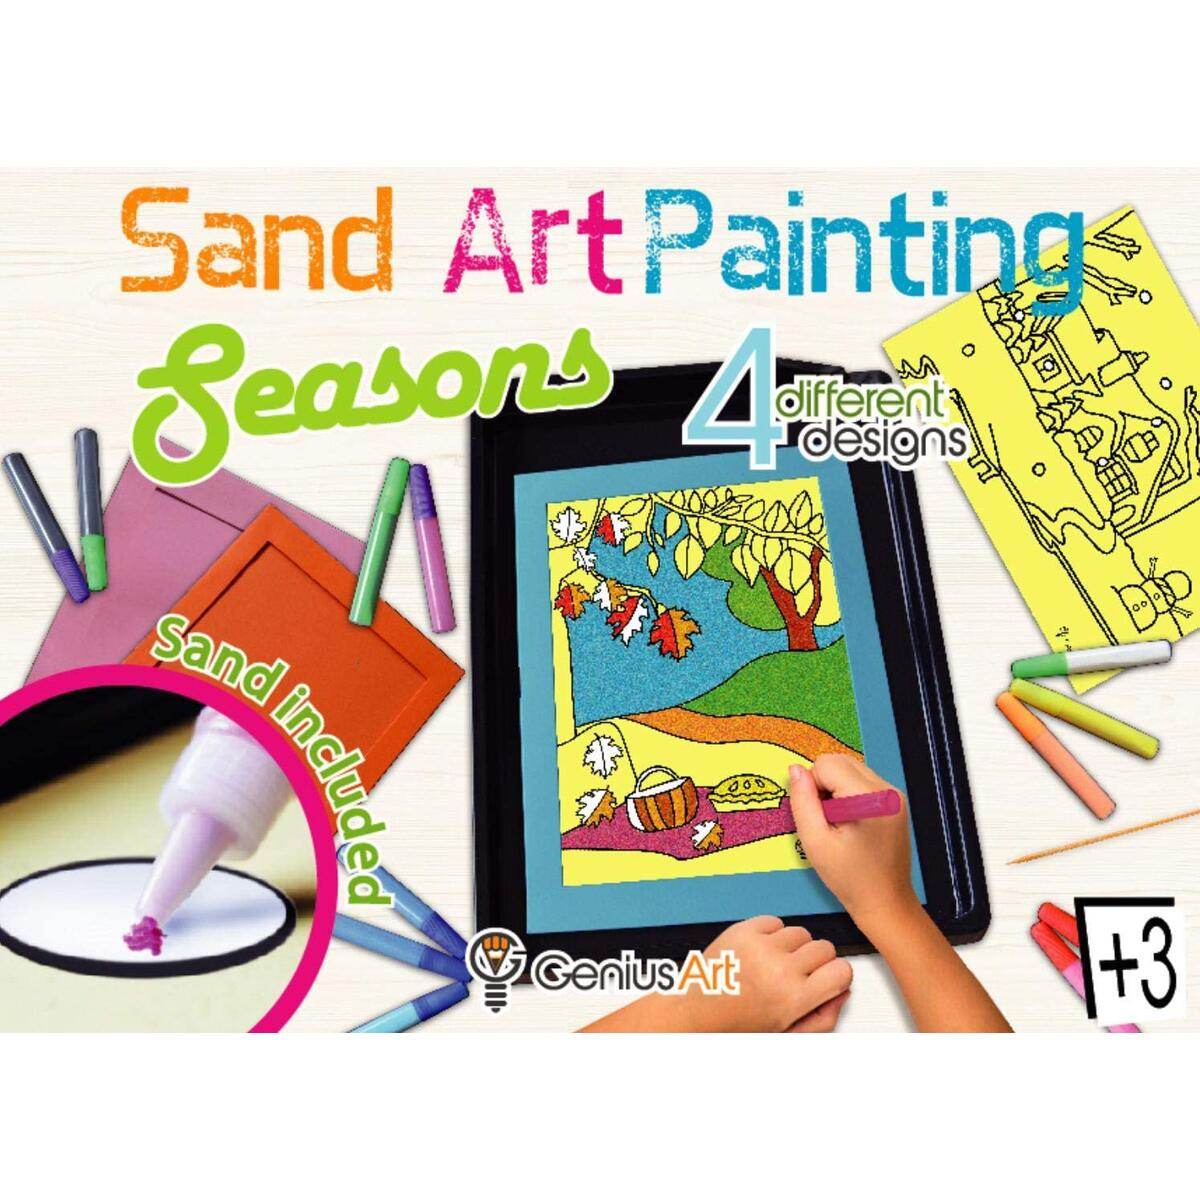 Genius Art Sand Art Painting Kits for Kids - Learn The Seasons - Arts and Crafts for Girls - Crafts for Kids Ages 4-8 - Girls Toys - Girl Crafts